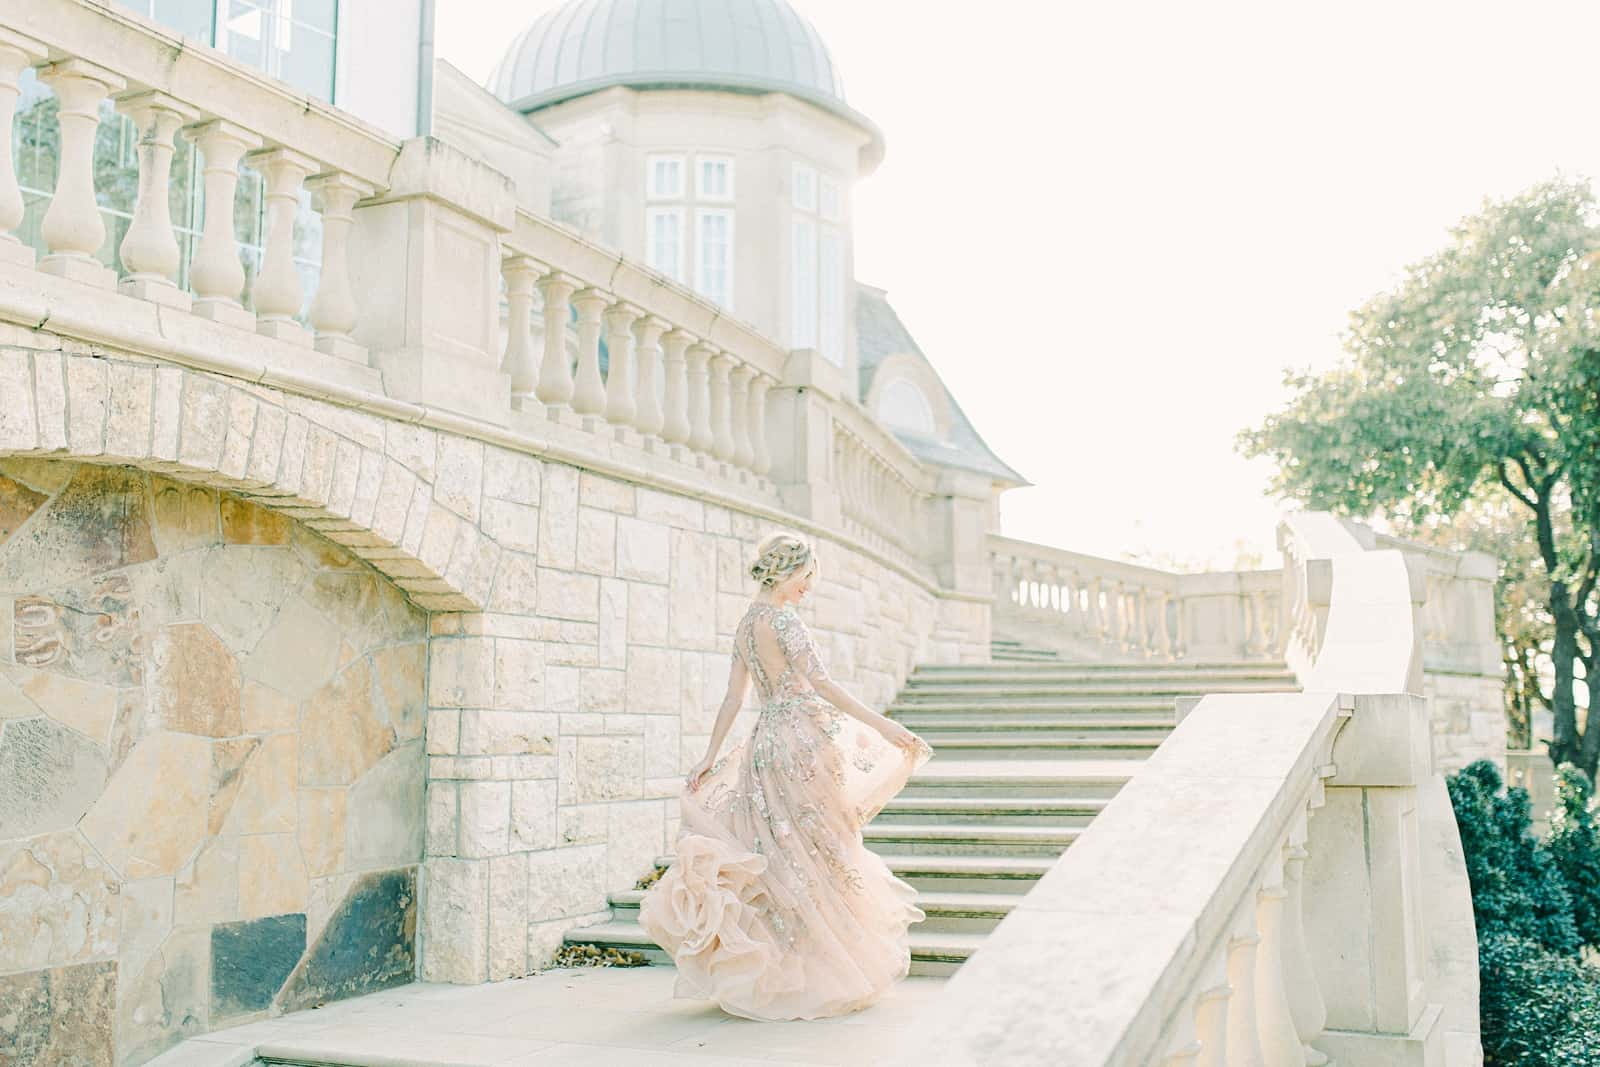 Bride twirling on steps of staircase in Rome, Italy